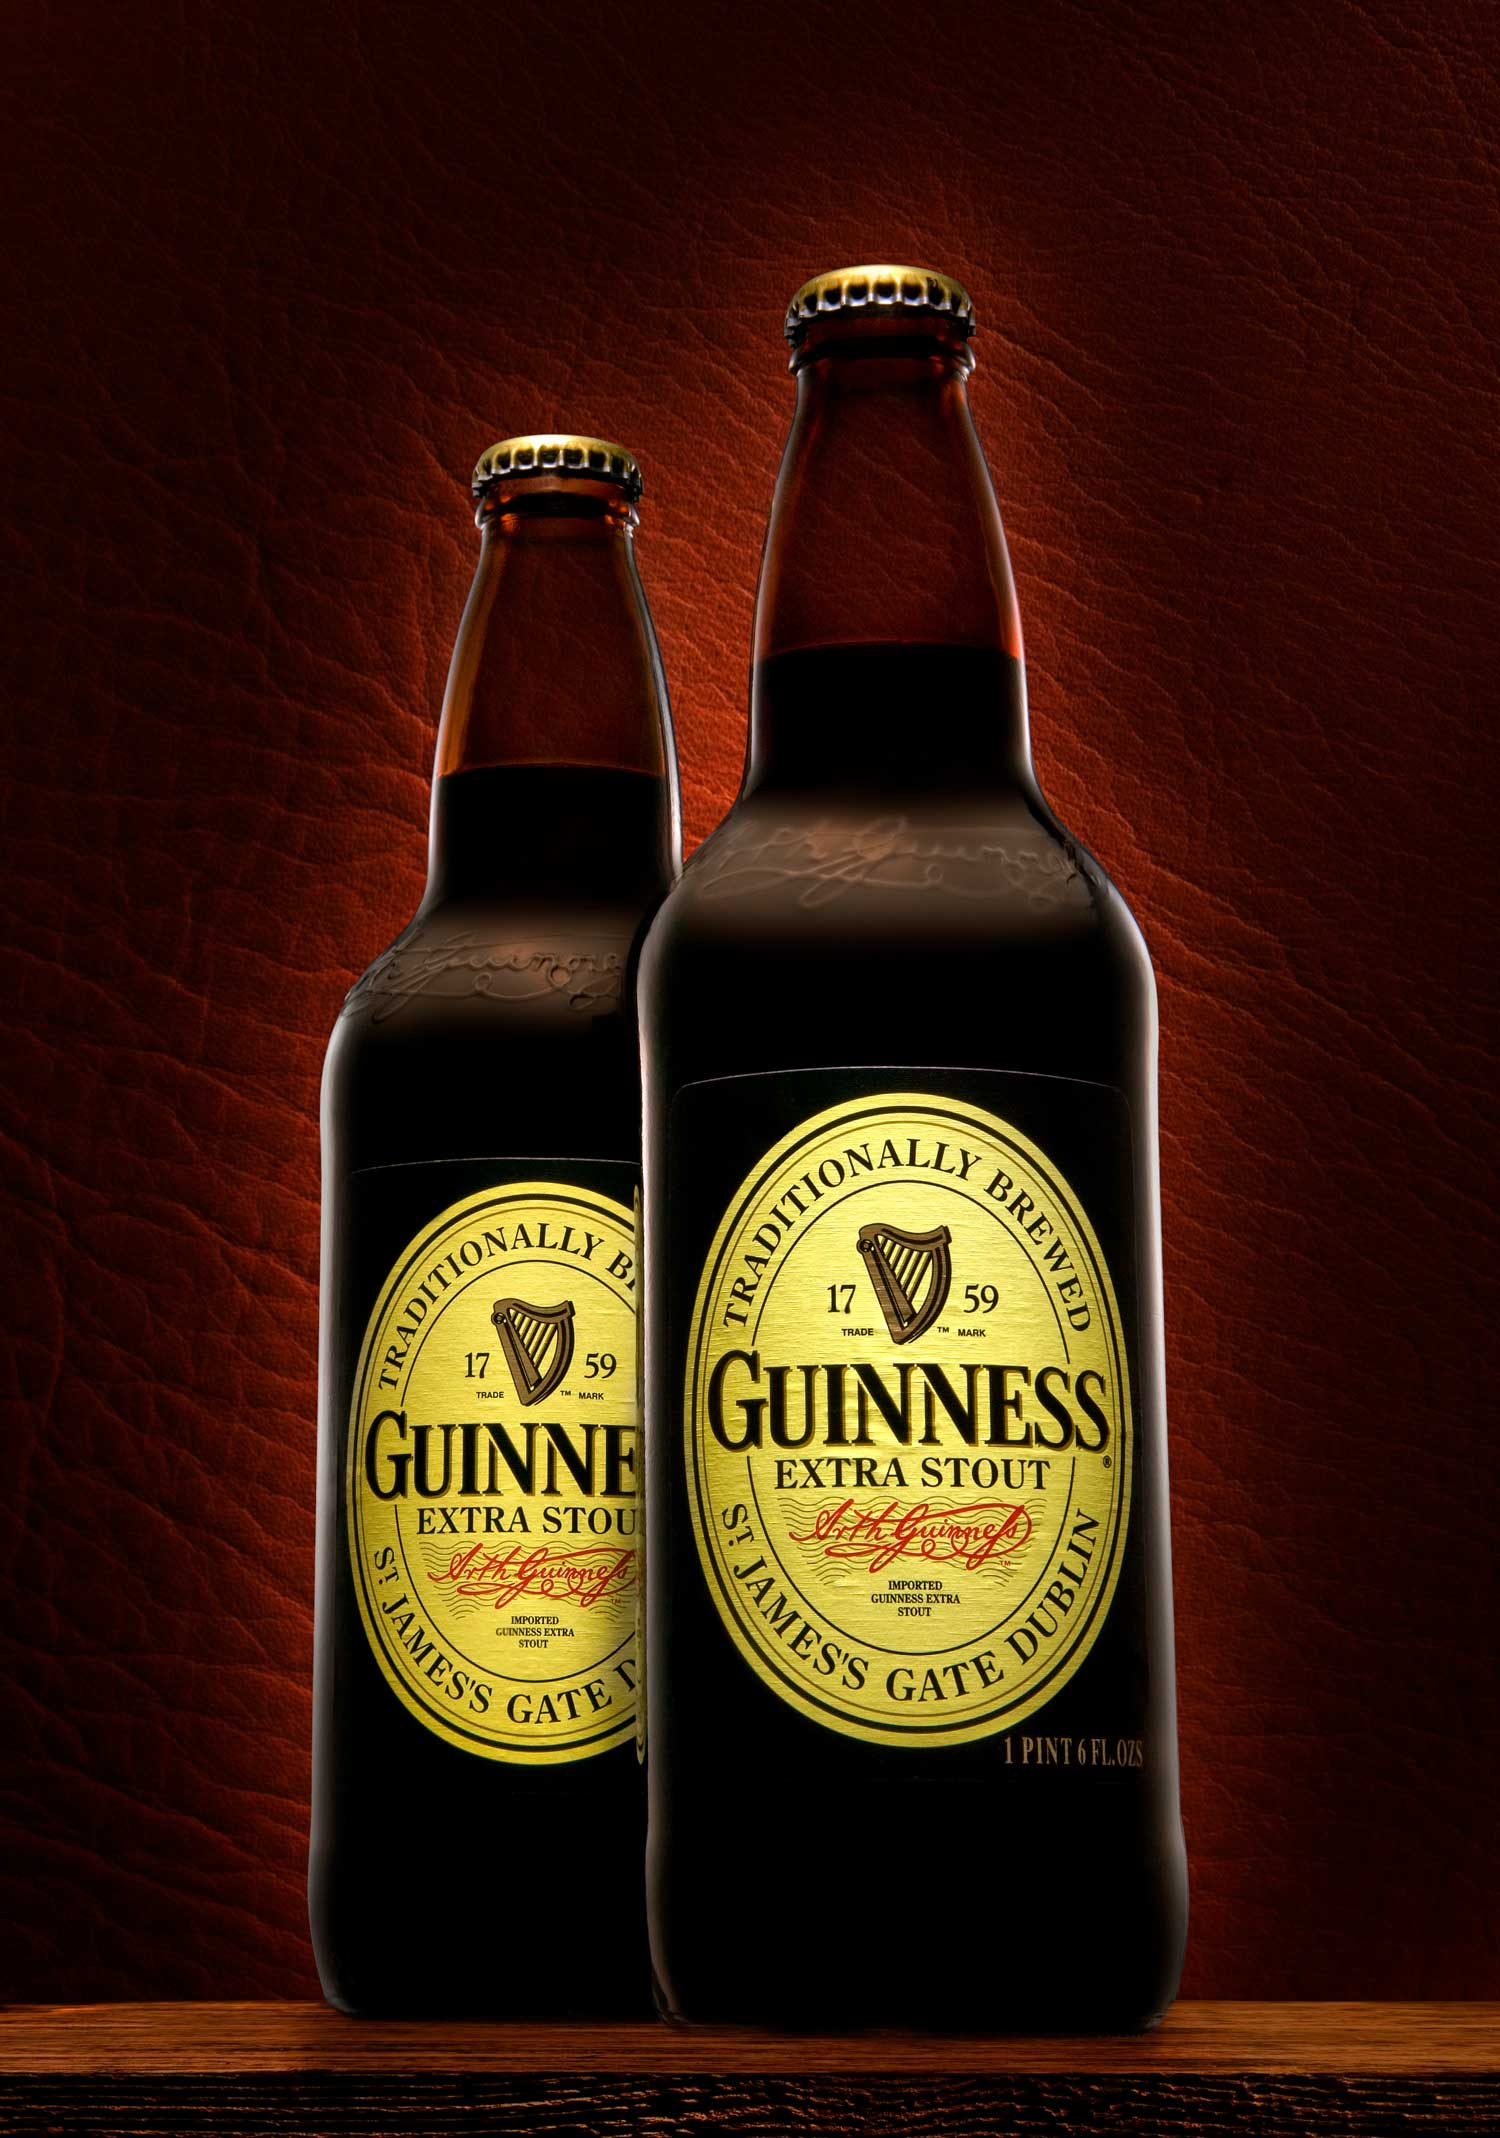 2 guinness bottles blurred background